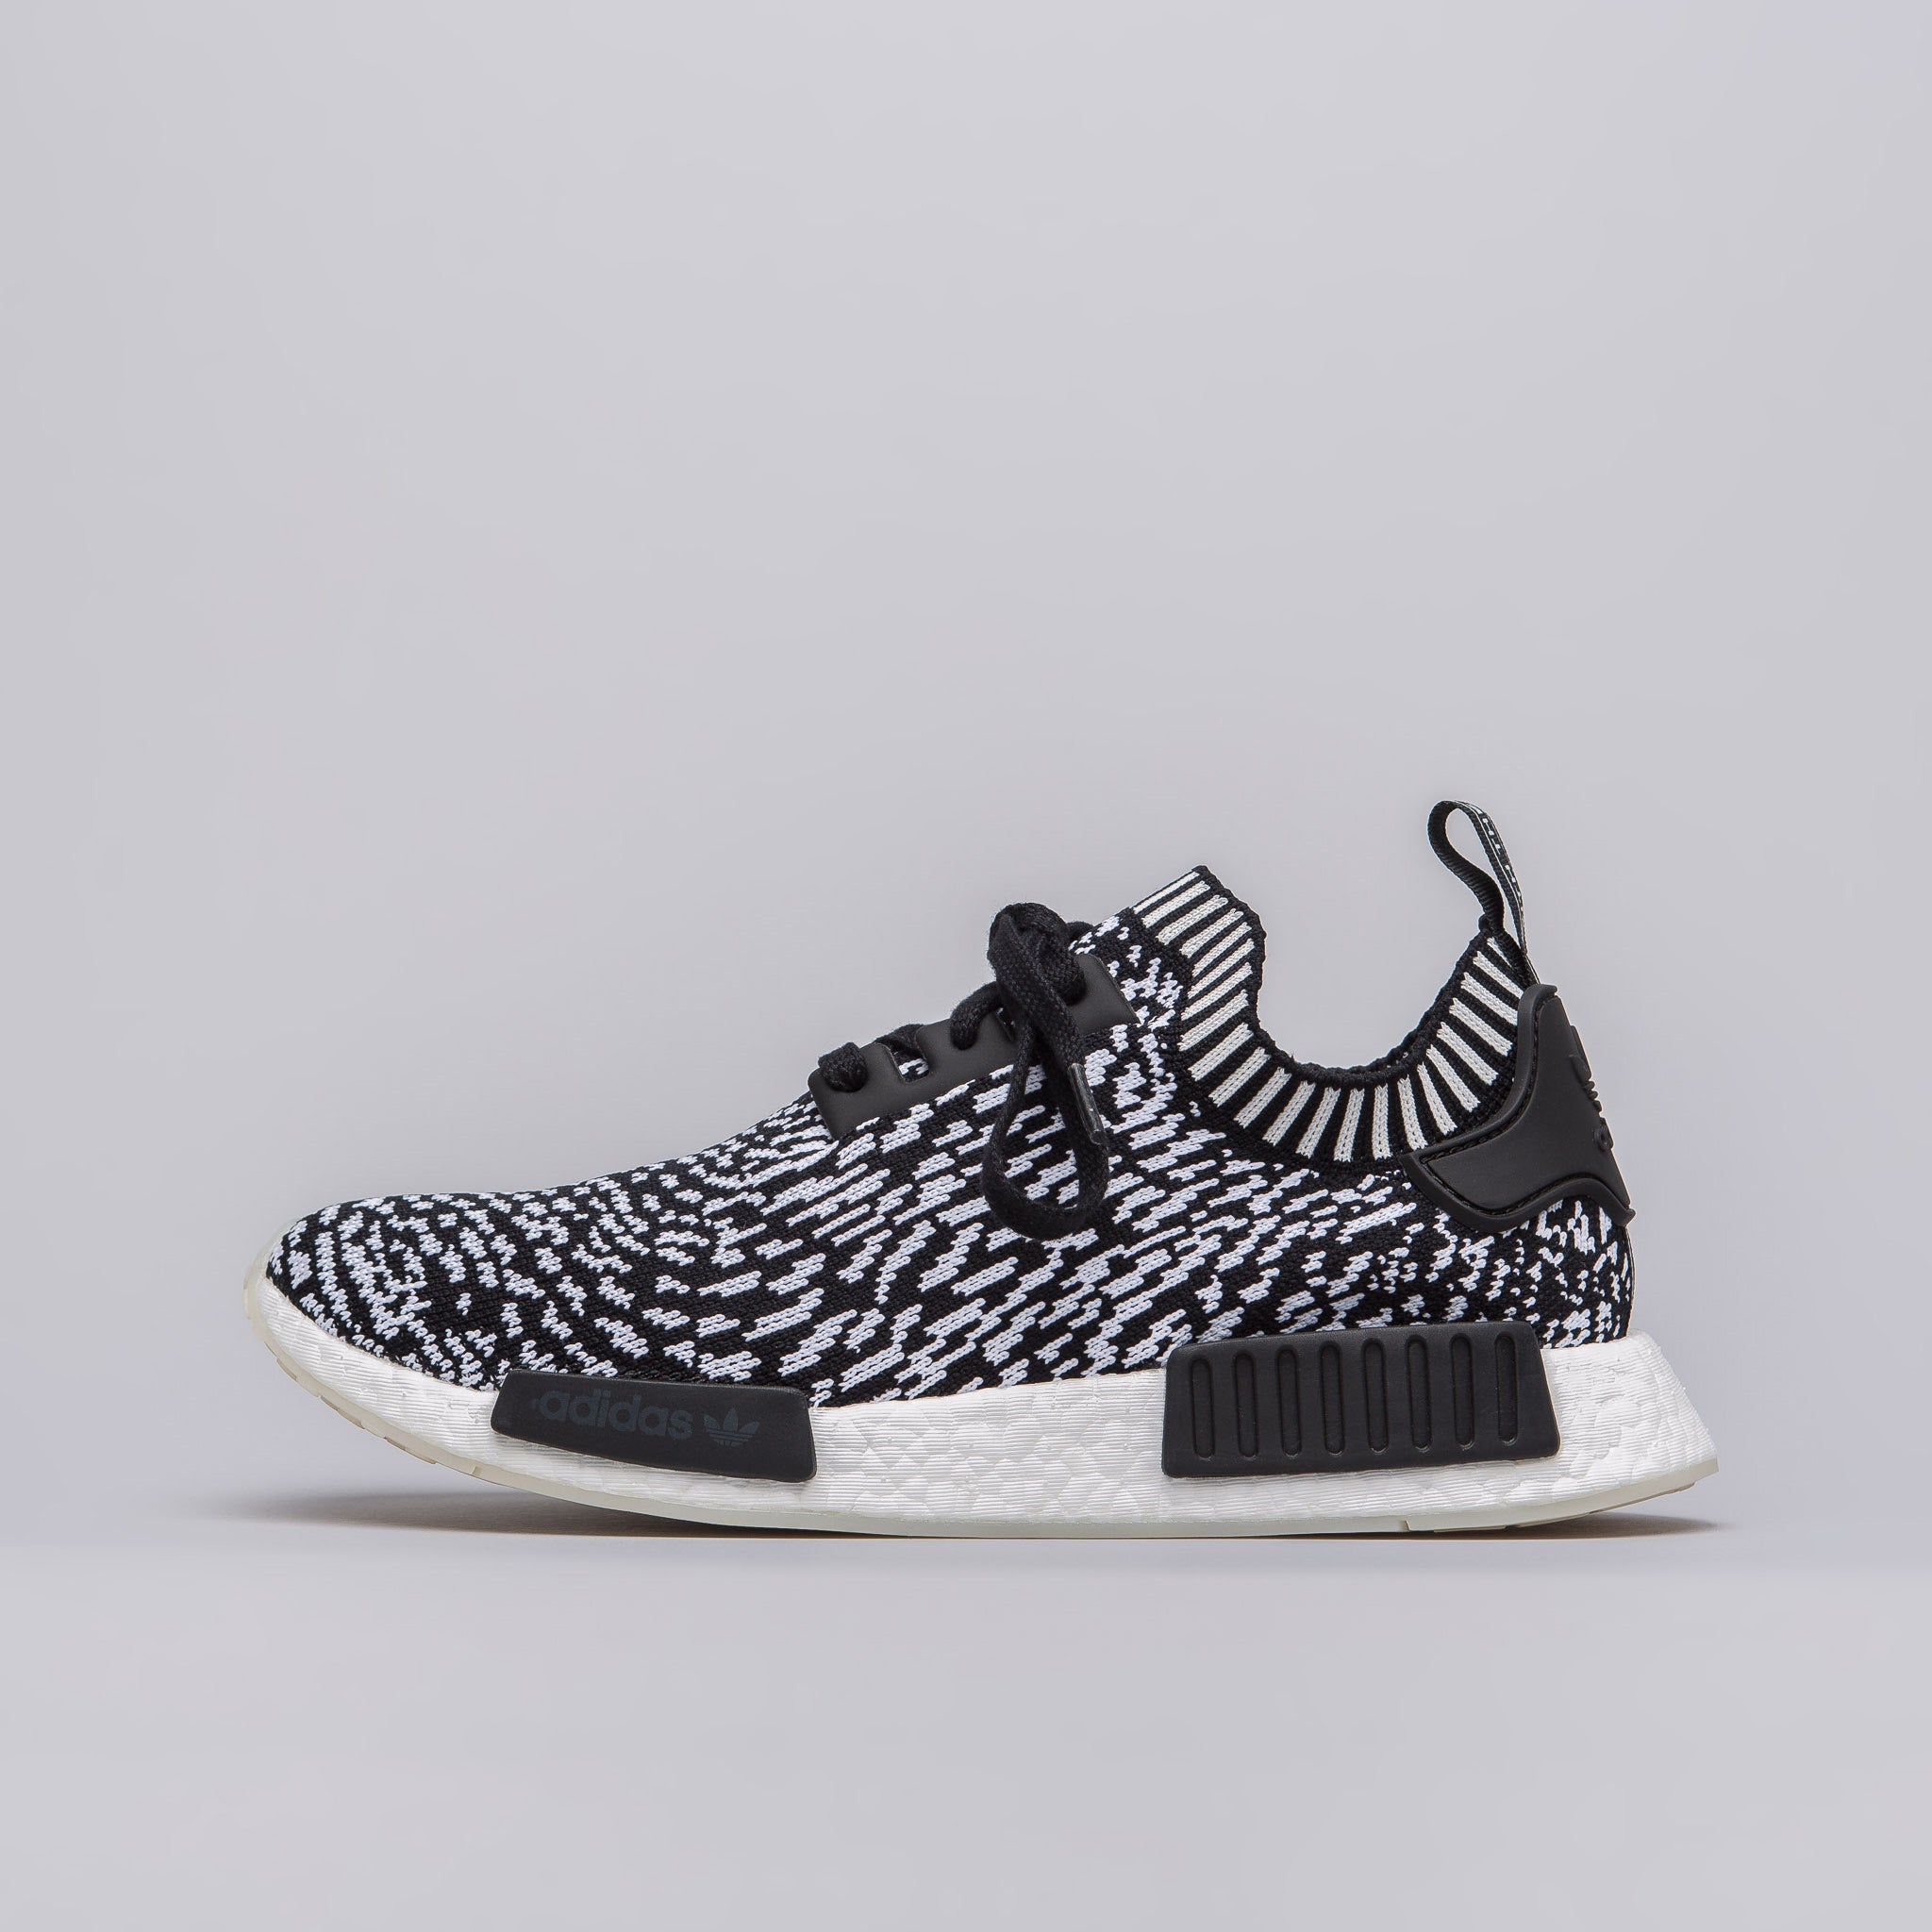 adidas nmd r1 grey black black adidas superstar jacket